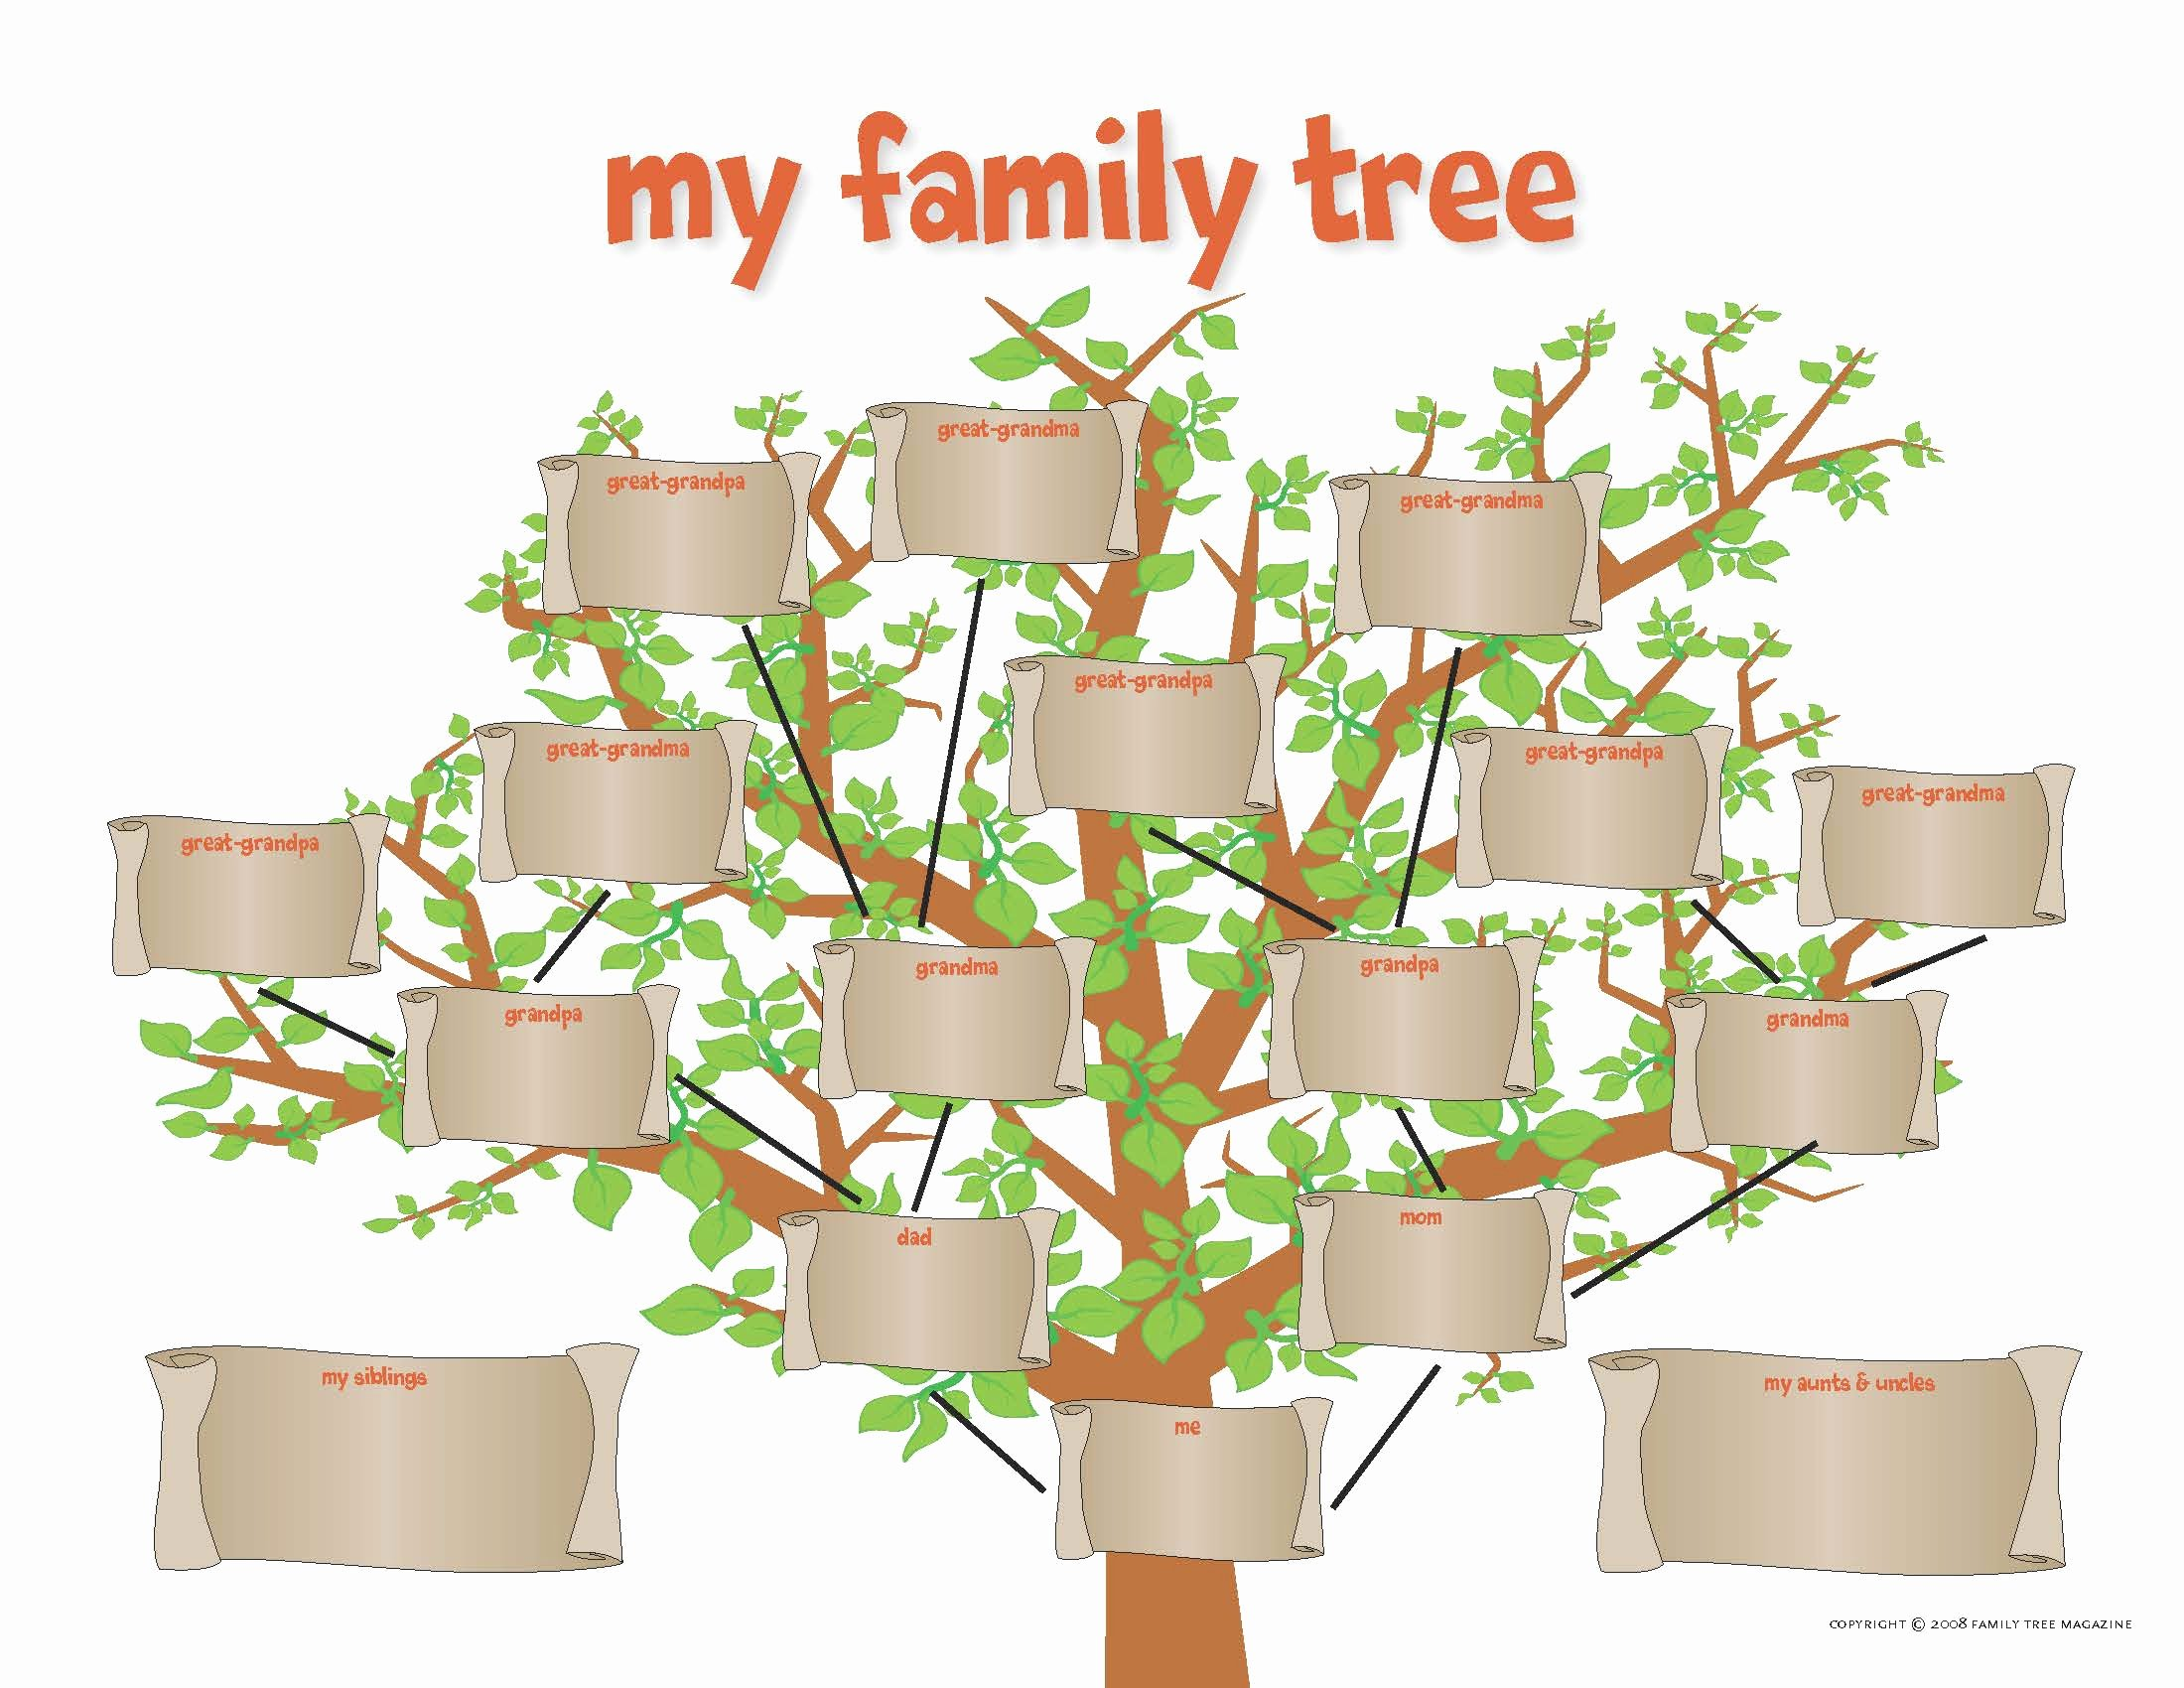 Family Tree How to Make New Activities